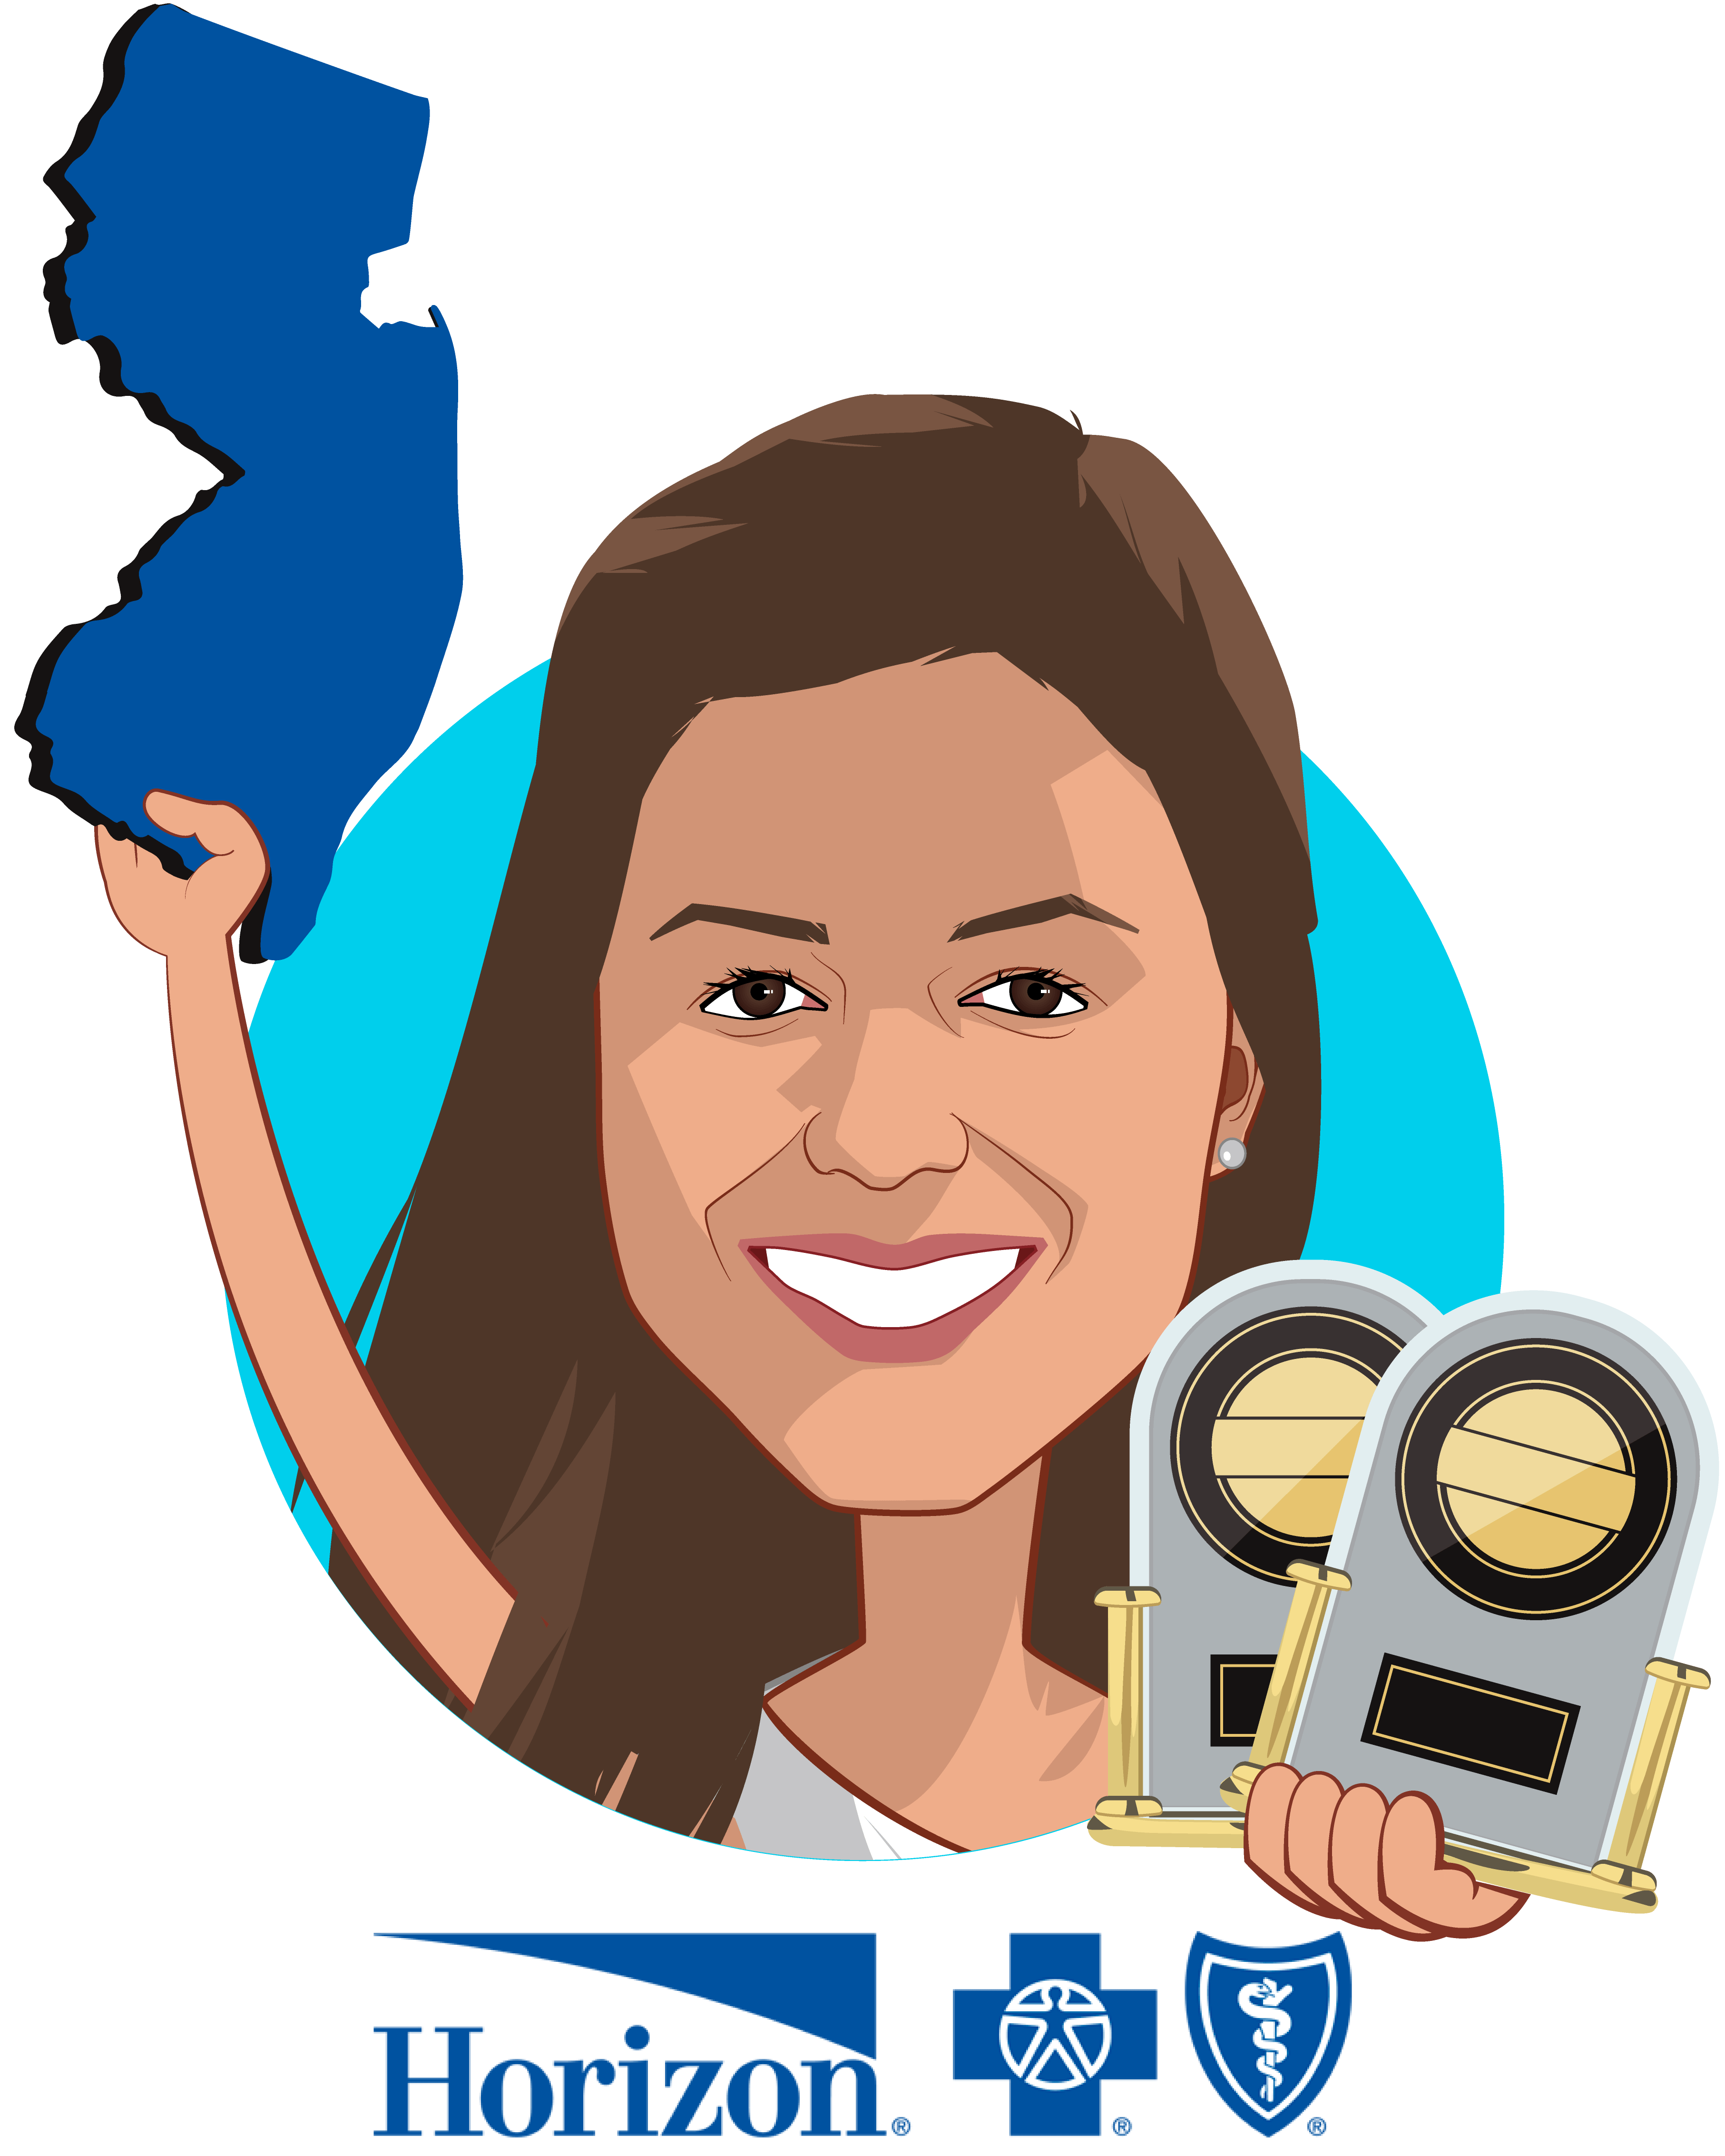 Overlay caricature of Divya Paliwal, MD, who is speaking at HLTH and is Chief Clinical Transformation Officer at Horizon Blue Cross Blue Shield of New Jersey